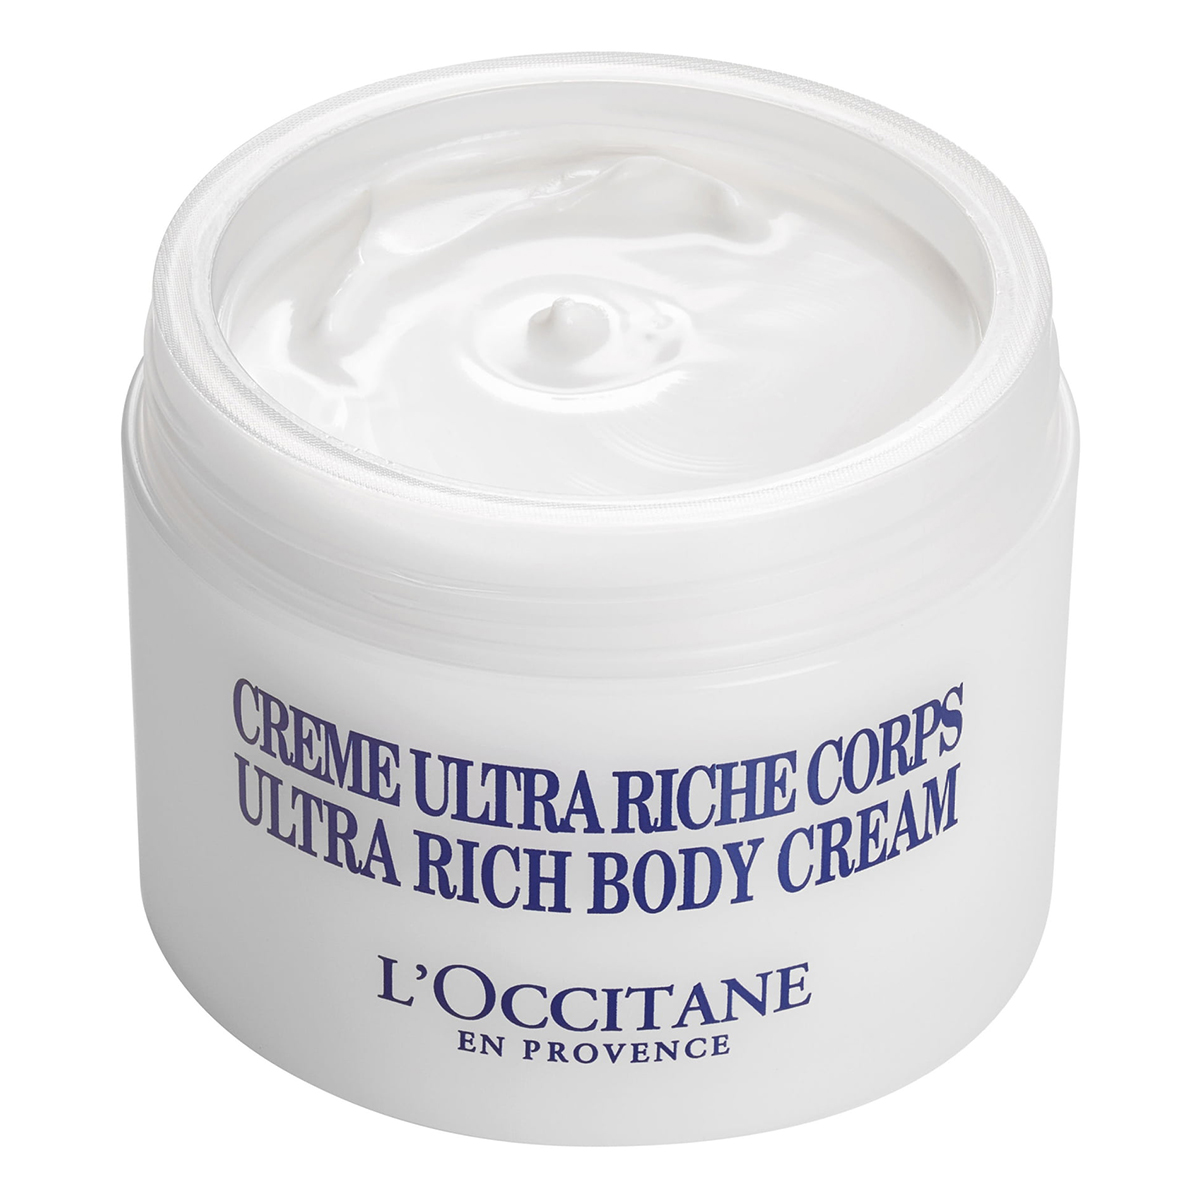 LOccitane Cream Open